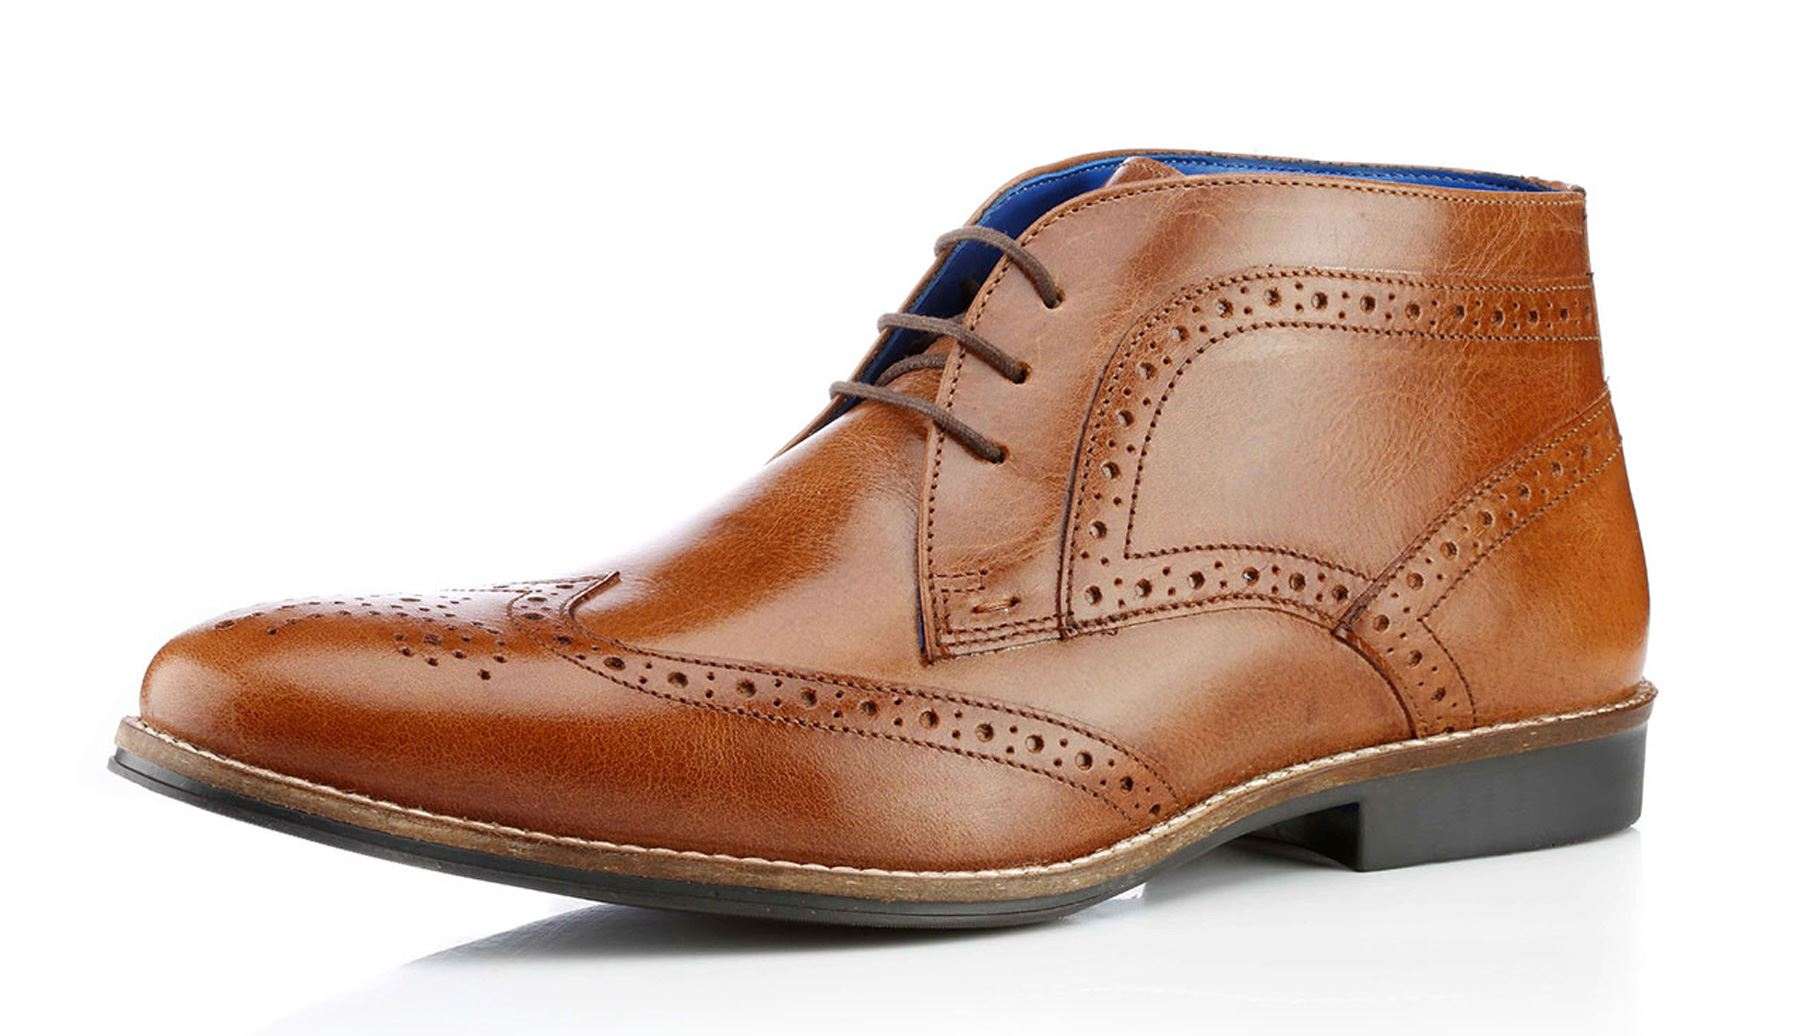 Brogue Boots Tan Leather - Tan Redtape